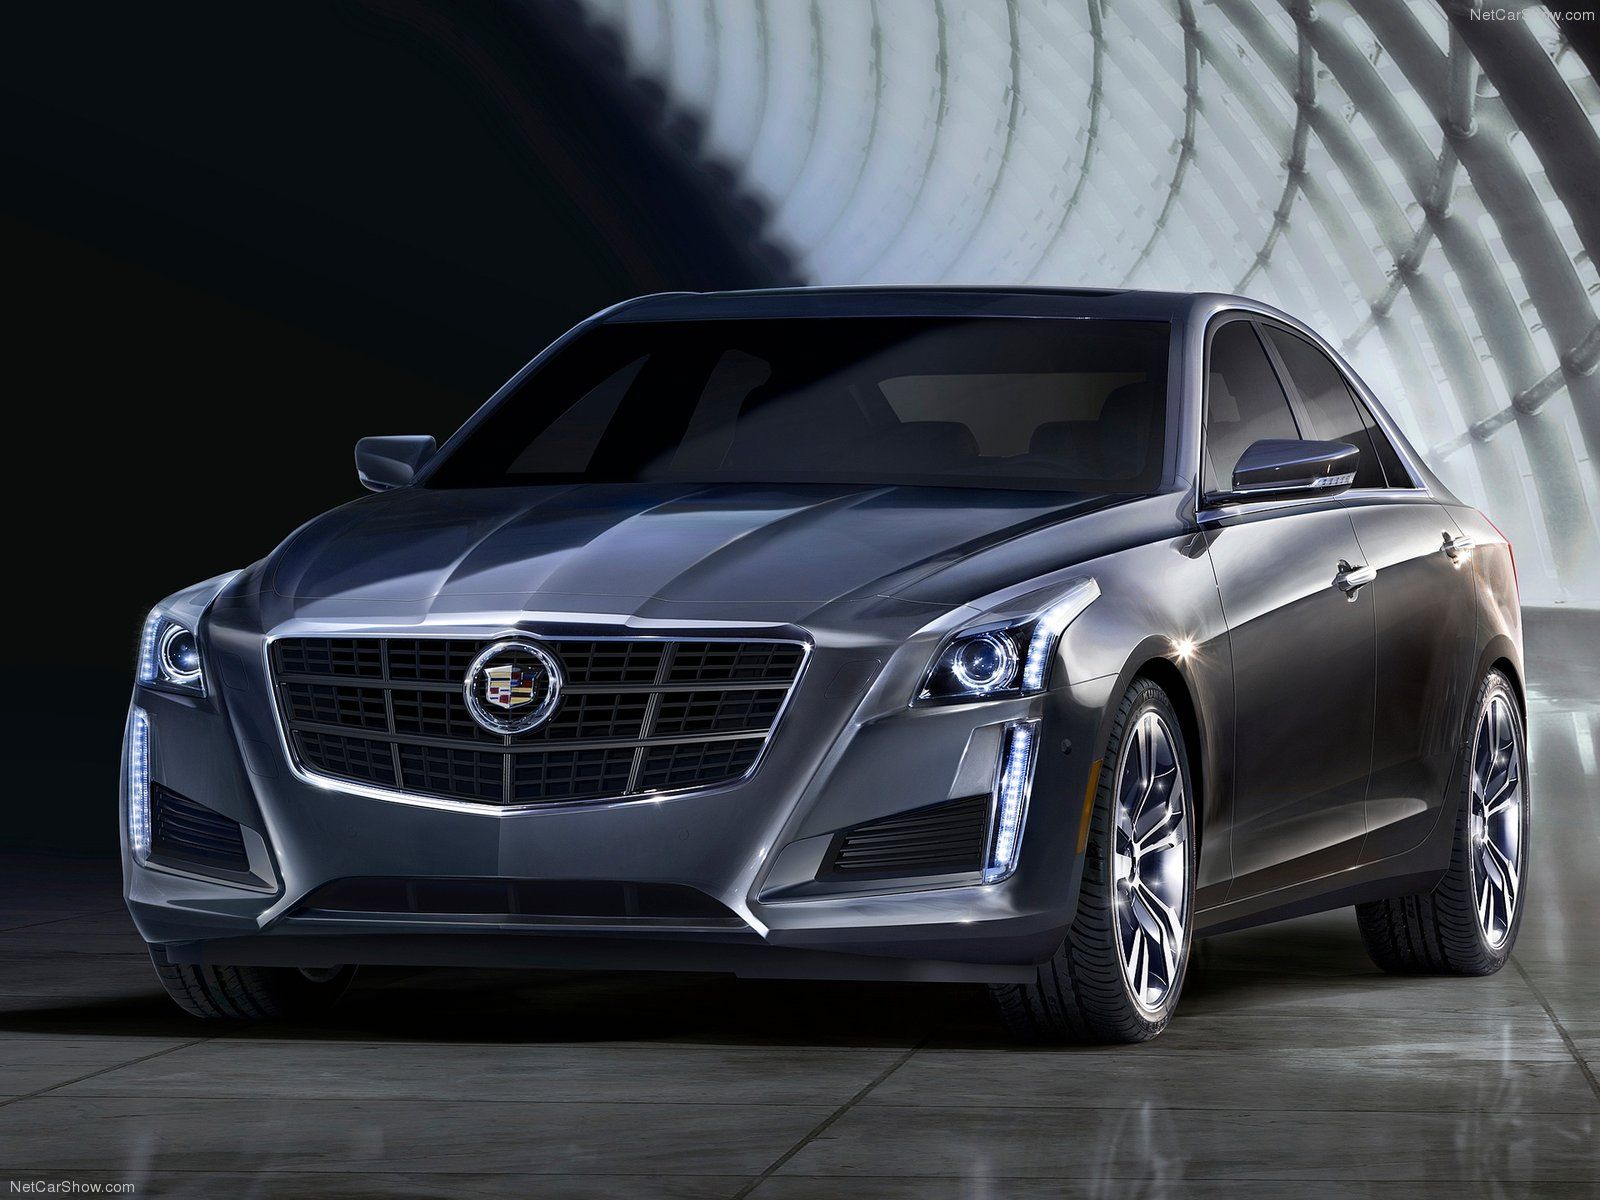 cadillac s 2014 cts looks to impress the world trucks and cars rh pinterest com